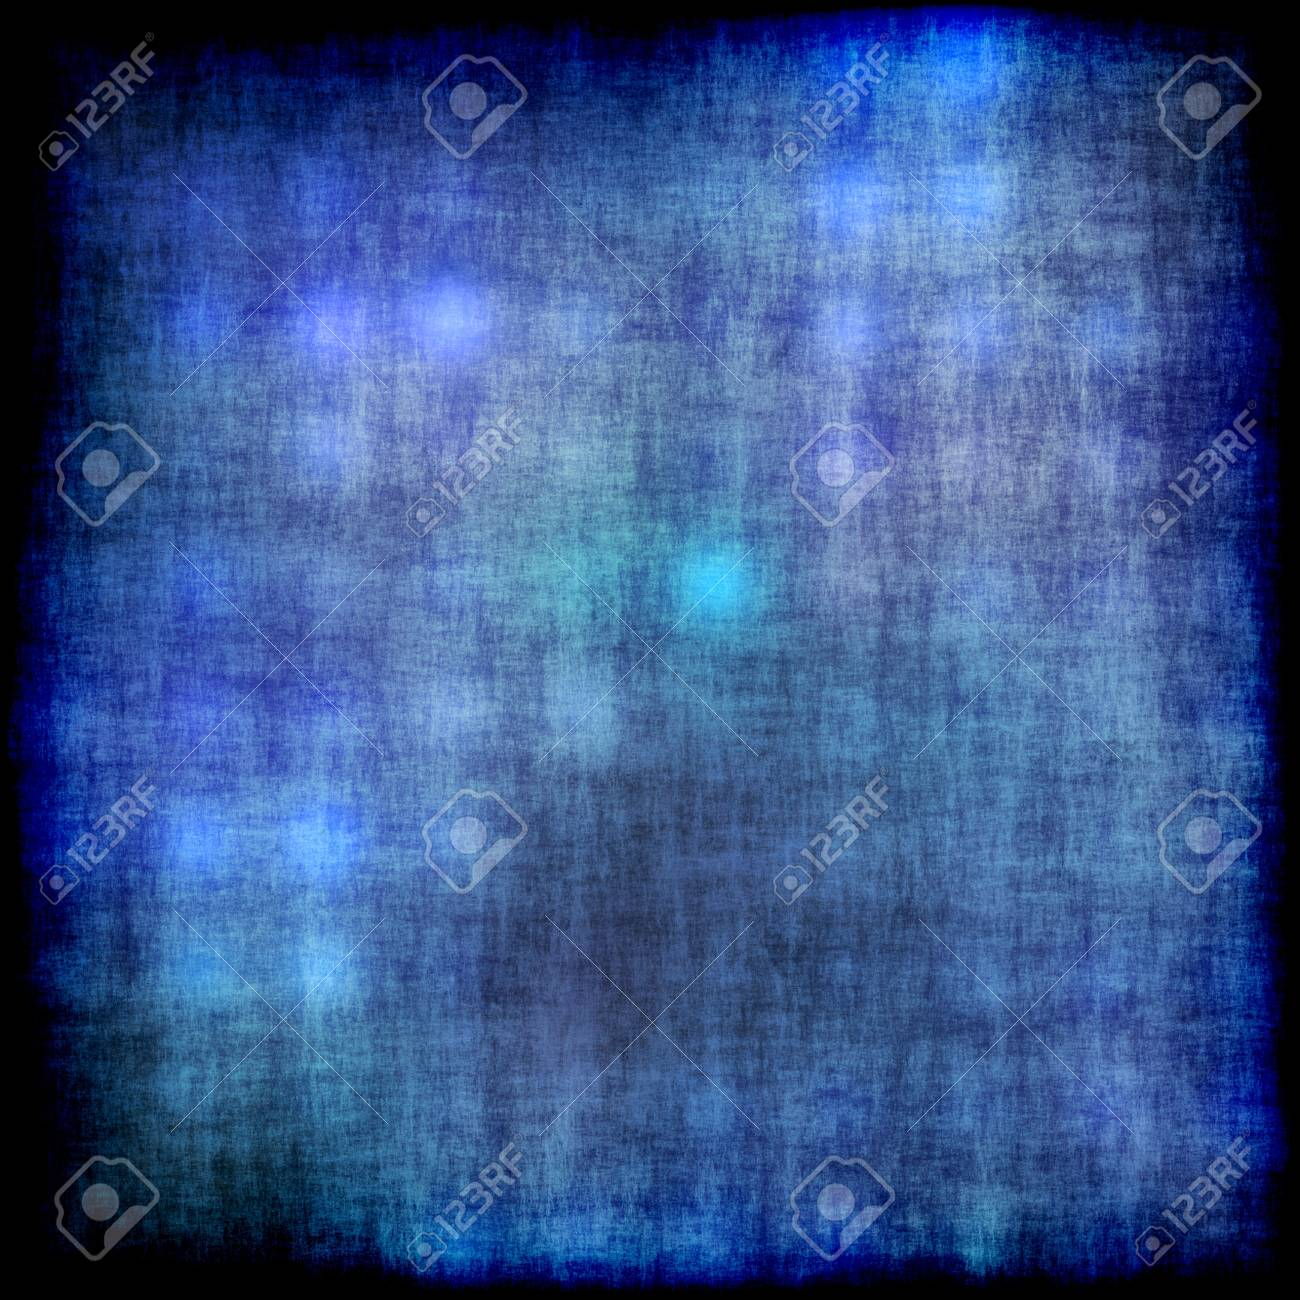 background paper Textures and Backgrounds grungy dots mixed colors Stock Photo - 18500913